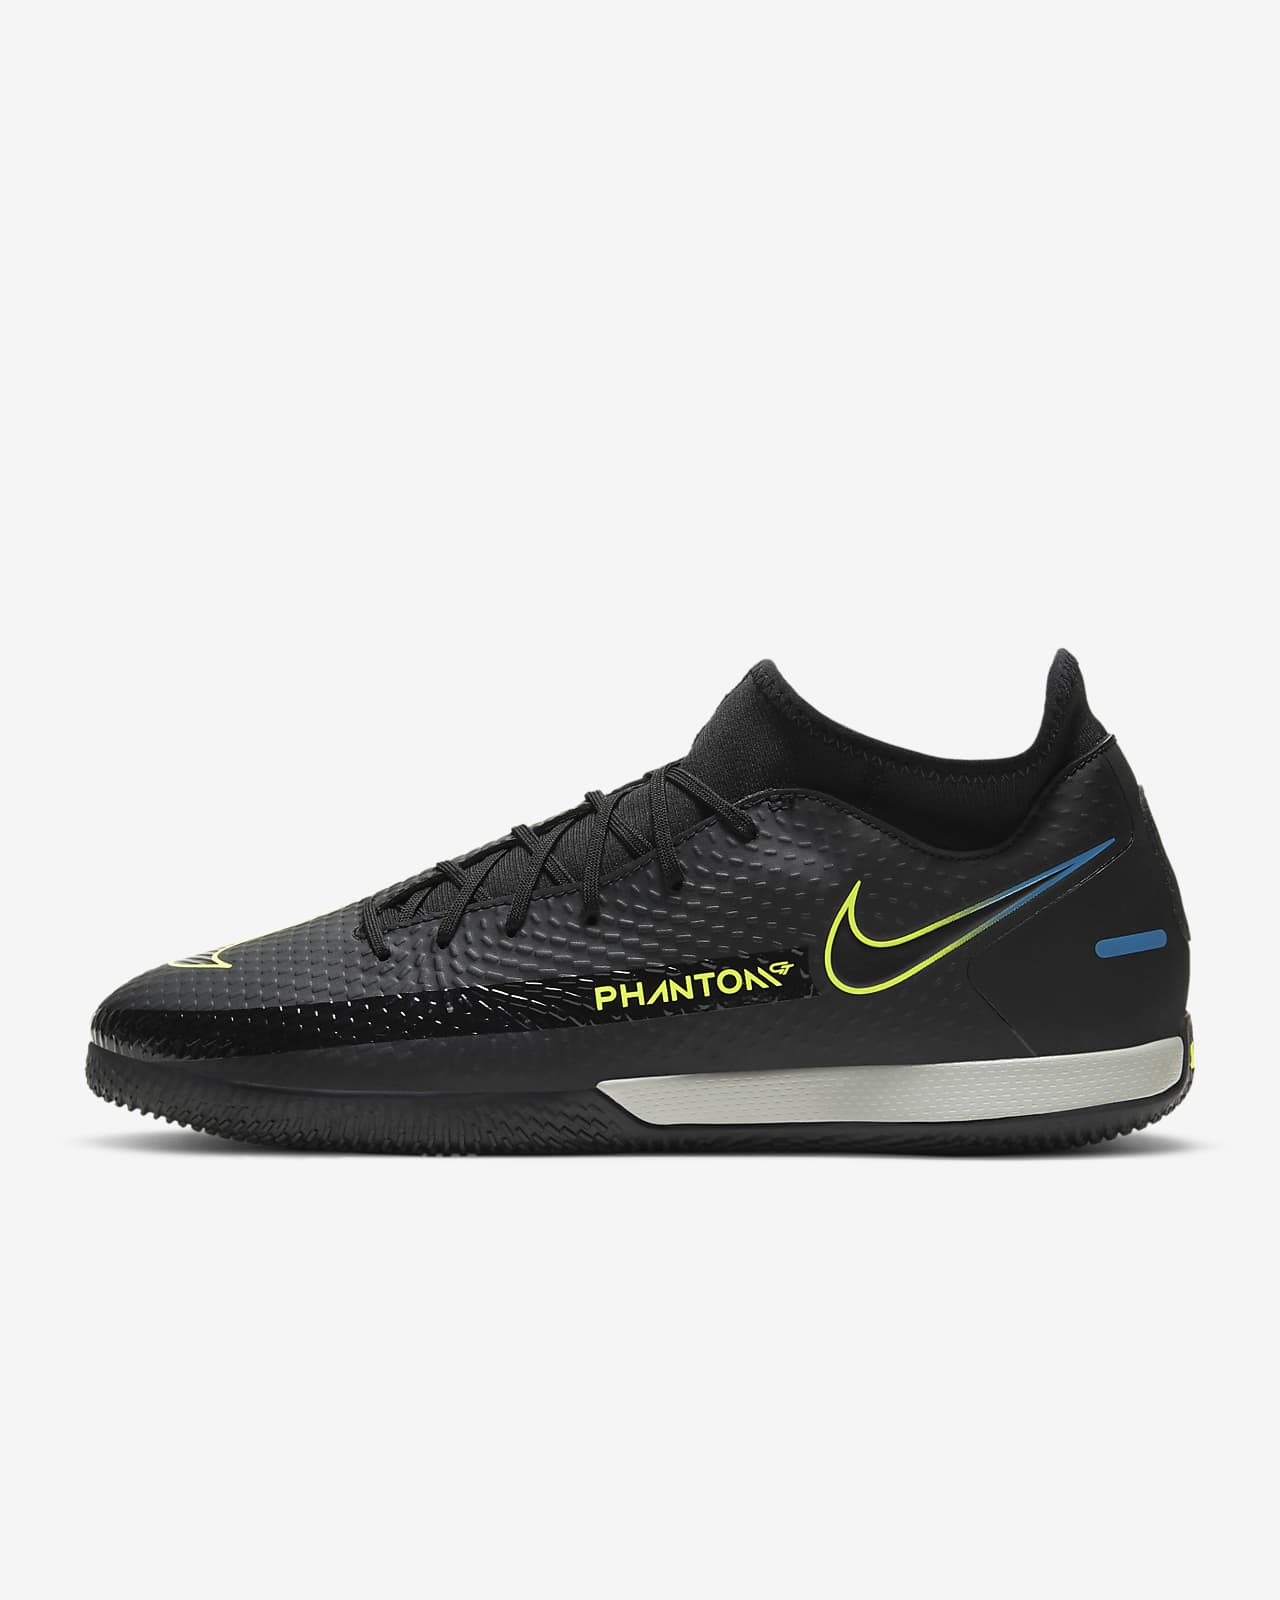 Nike Phantom GT Academy Dynamic Fit IC Indoor/Court Soccer Shoe